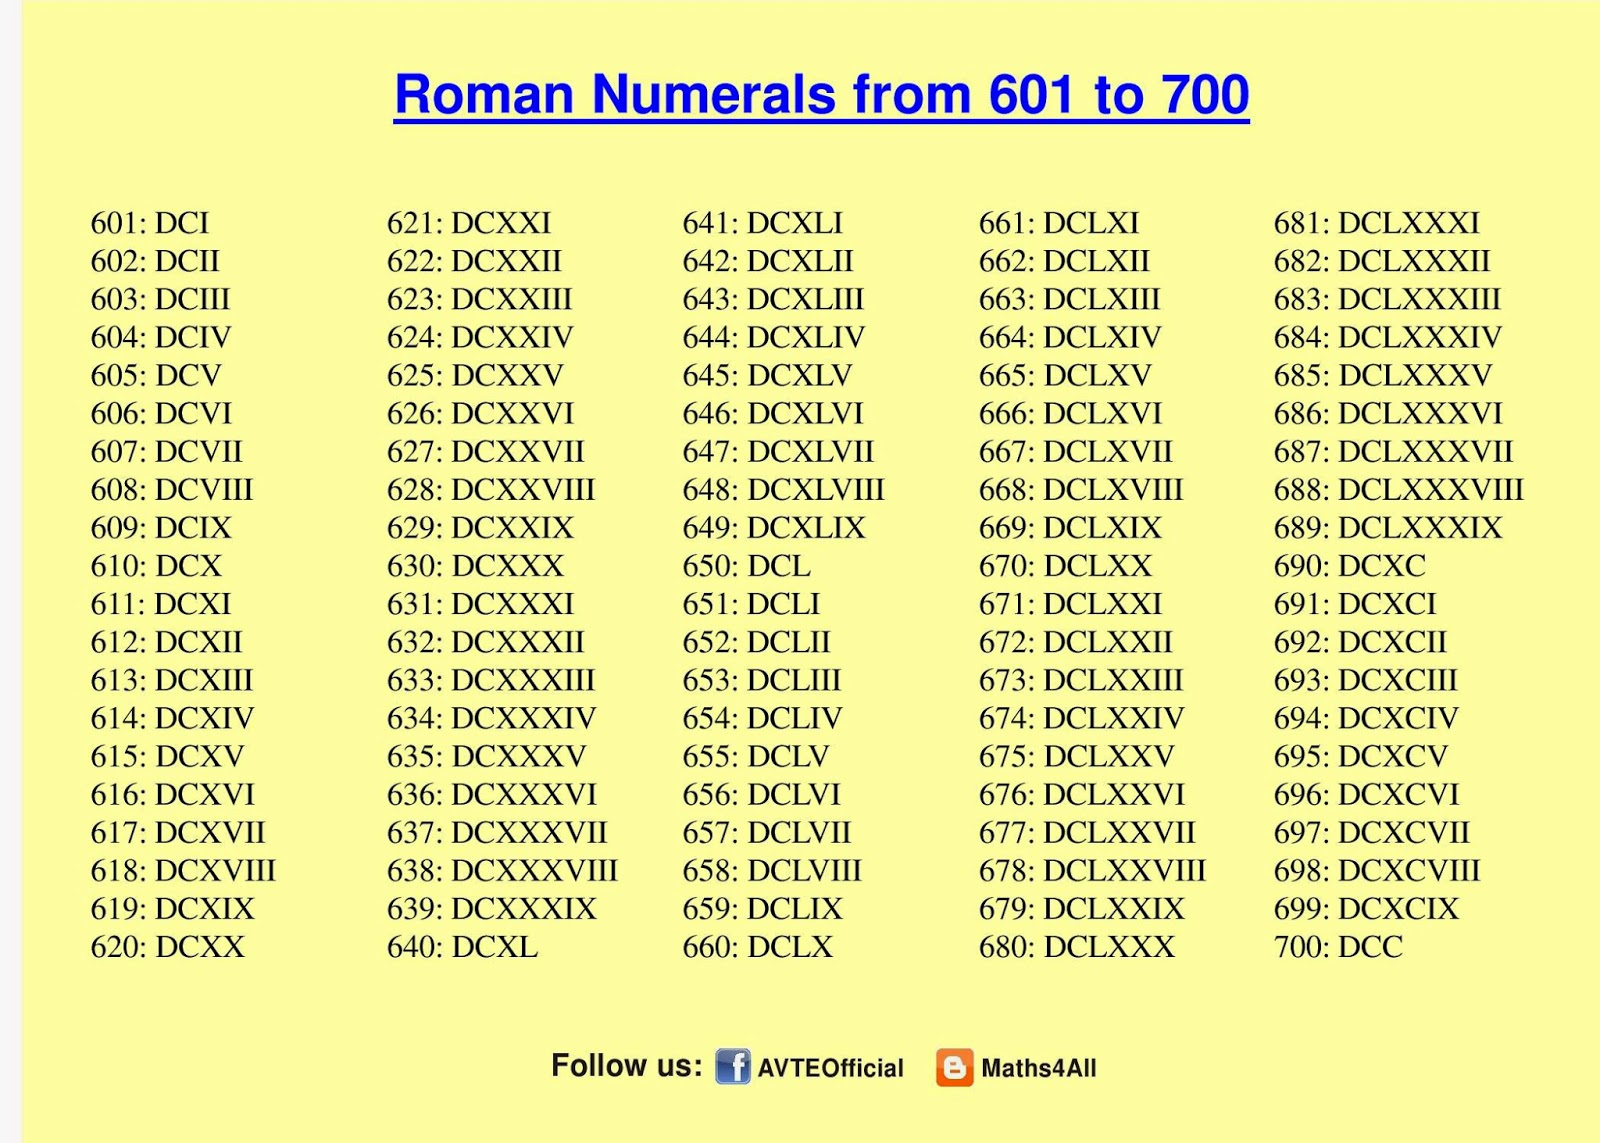 How to write 1982 in roman numerals